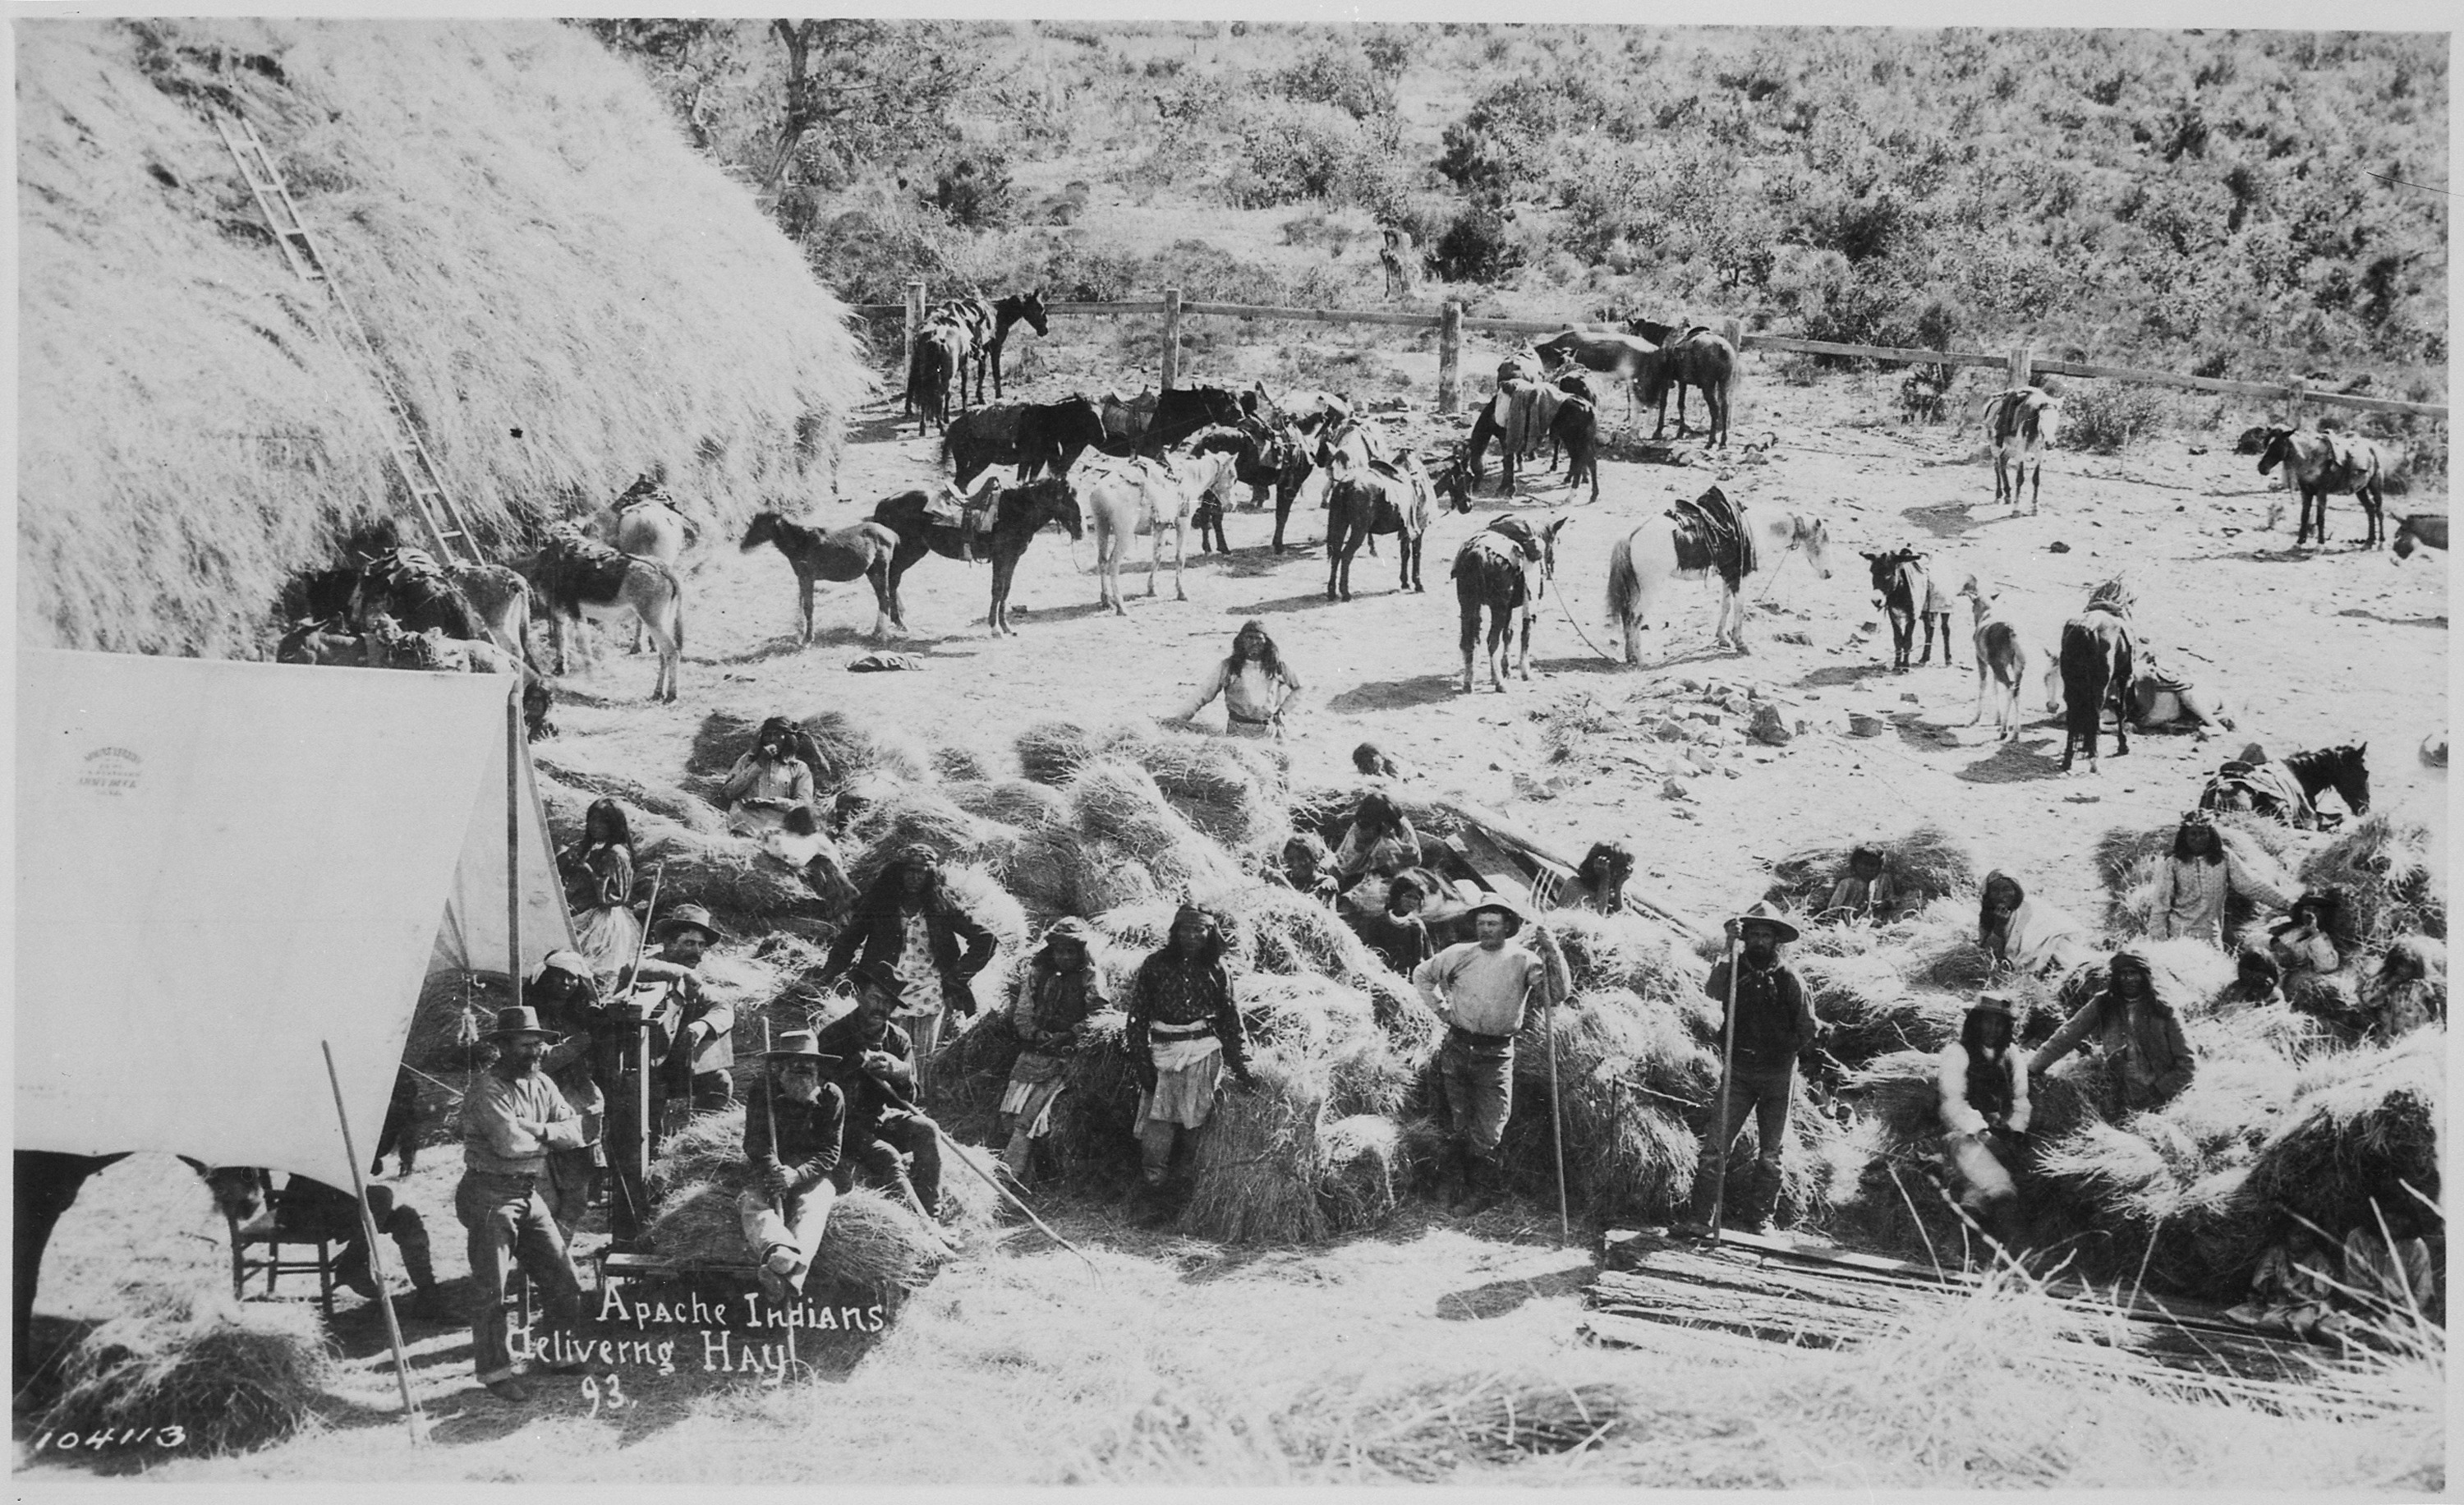 Apaches_delivering_hay_at_Fort_Apache_Arizona_1893